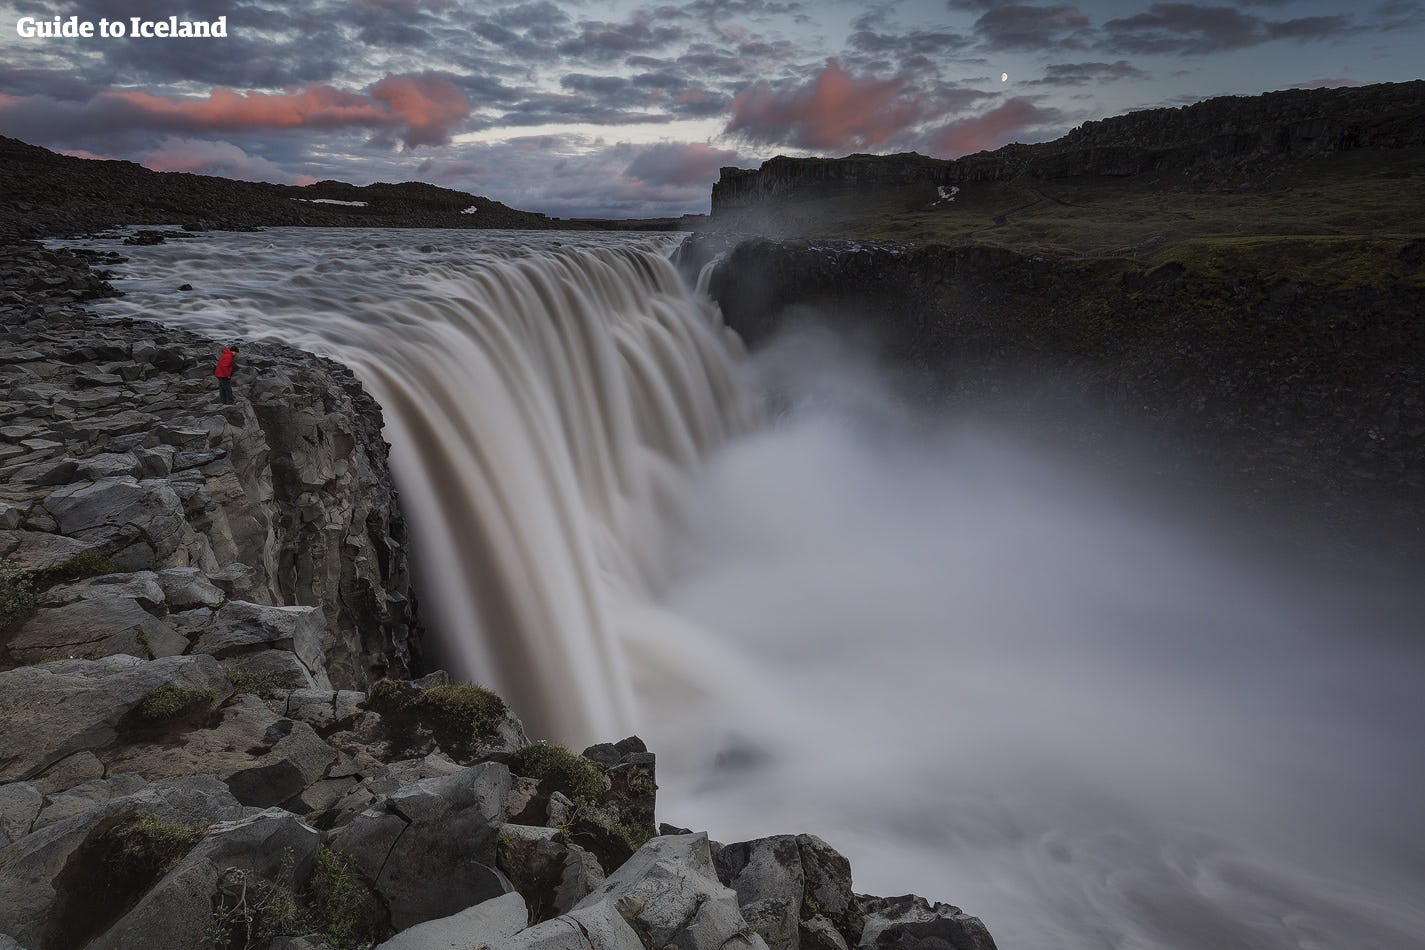 Dettifoss waterfall is fed by meltwater from Vatnajökull glacier.